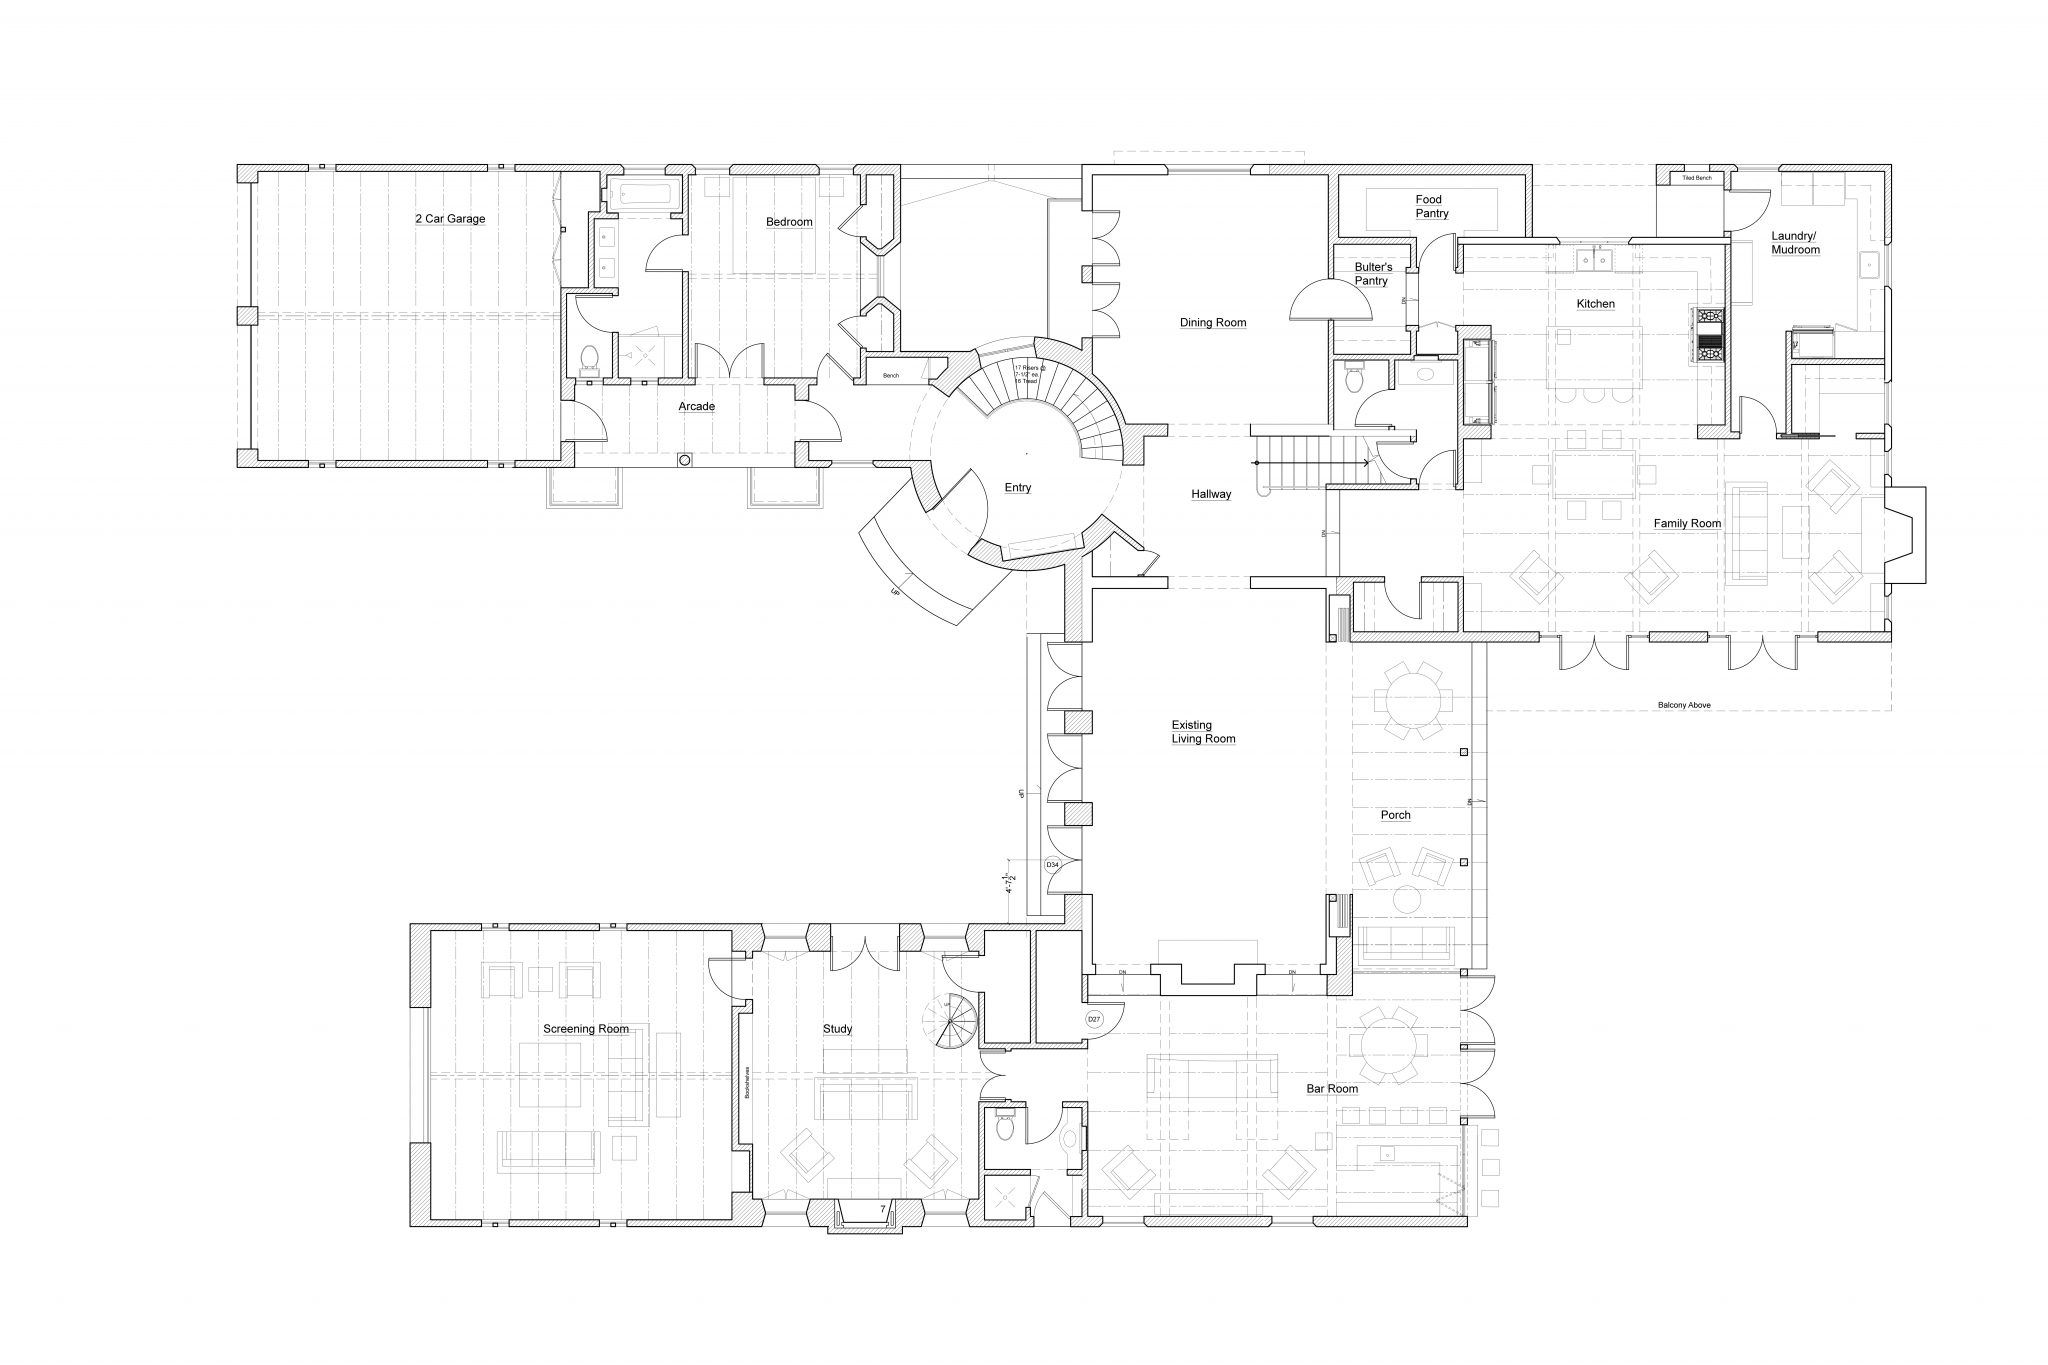 Case De La Torre Michael Burch Architects In 2020 Floor Plans Spanish Colonial My Dream Home